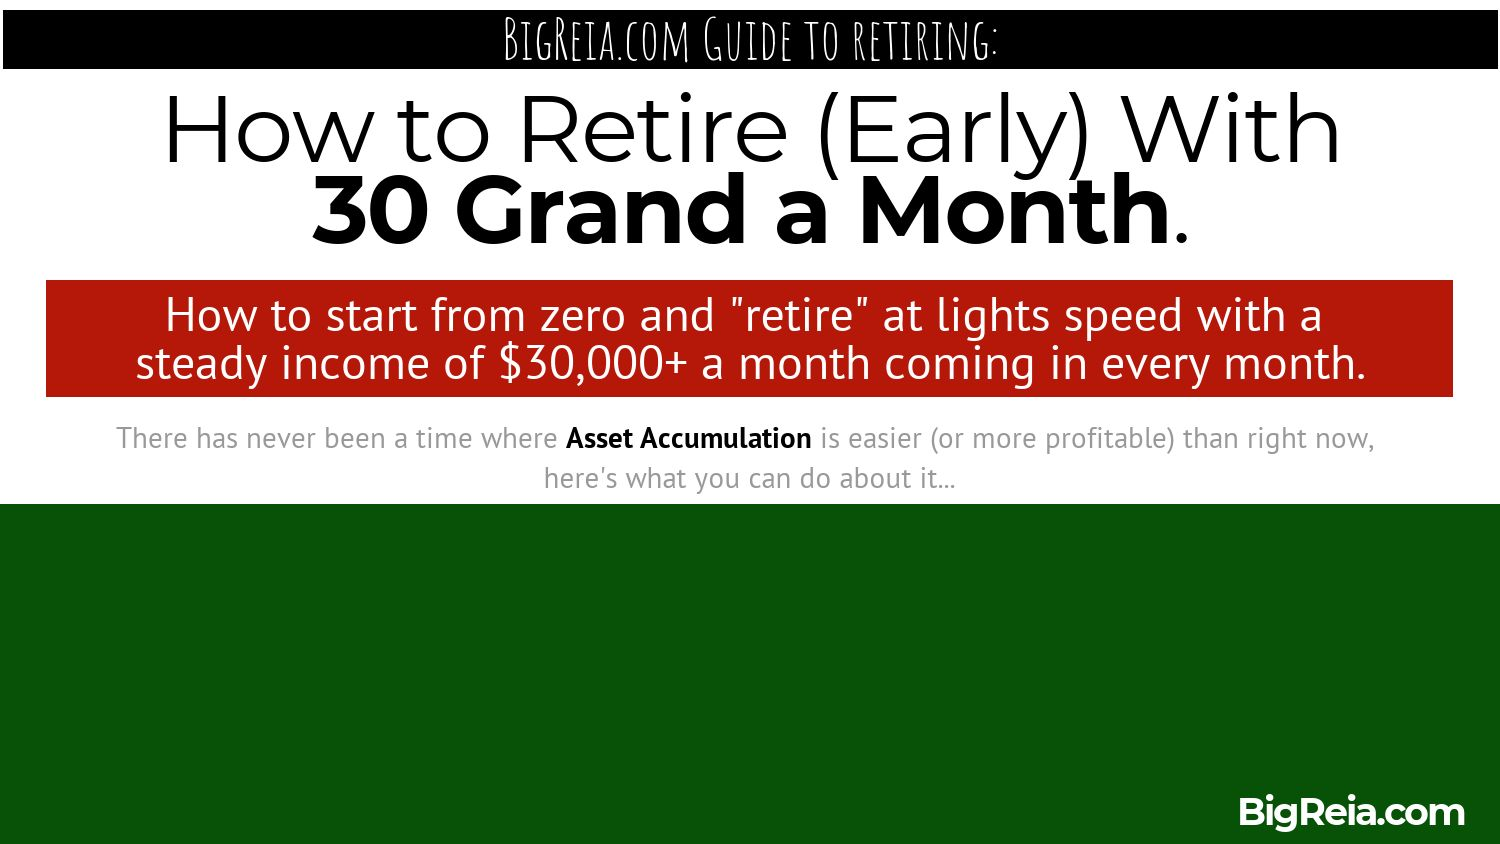 Retire at 30k a month